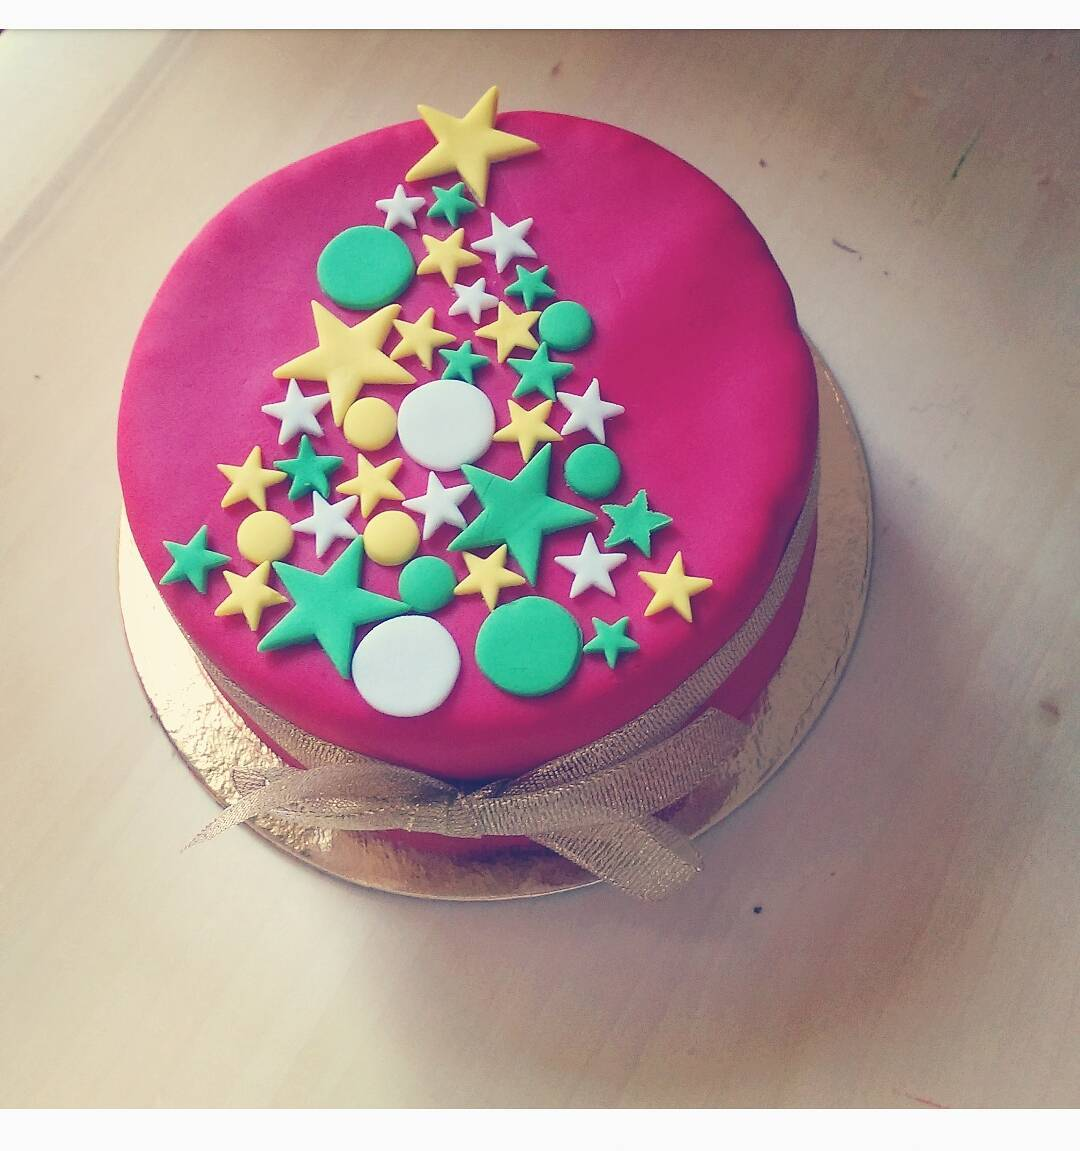 Amazing Christmas Cake Decorated With Colored Stars